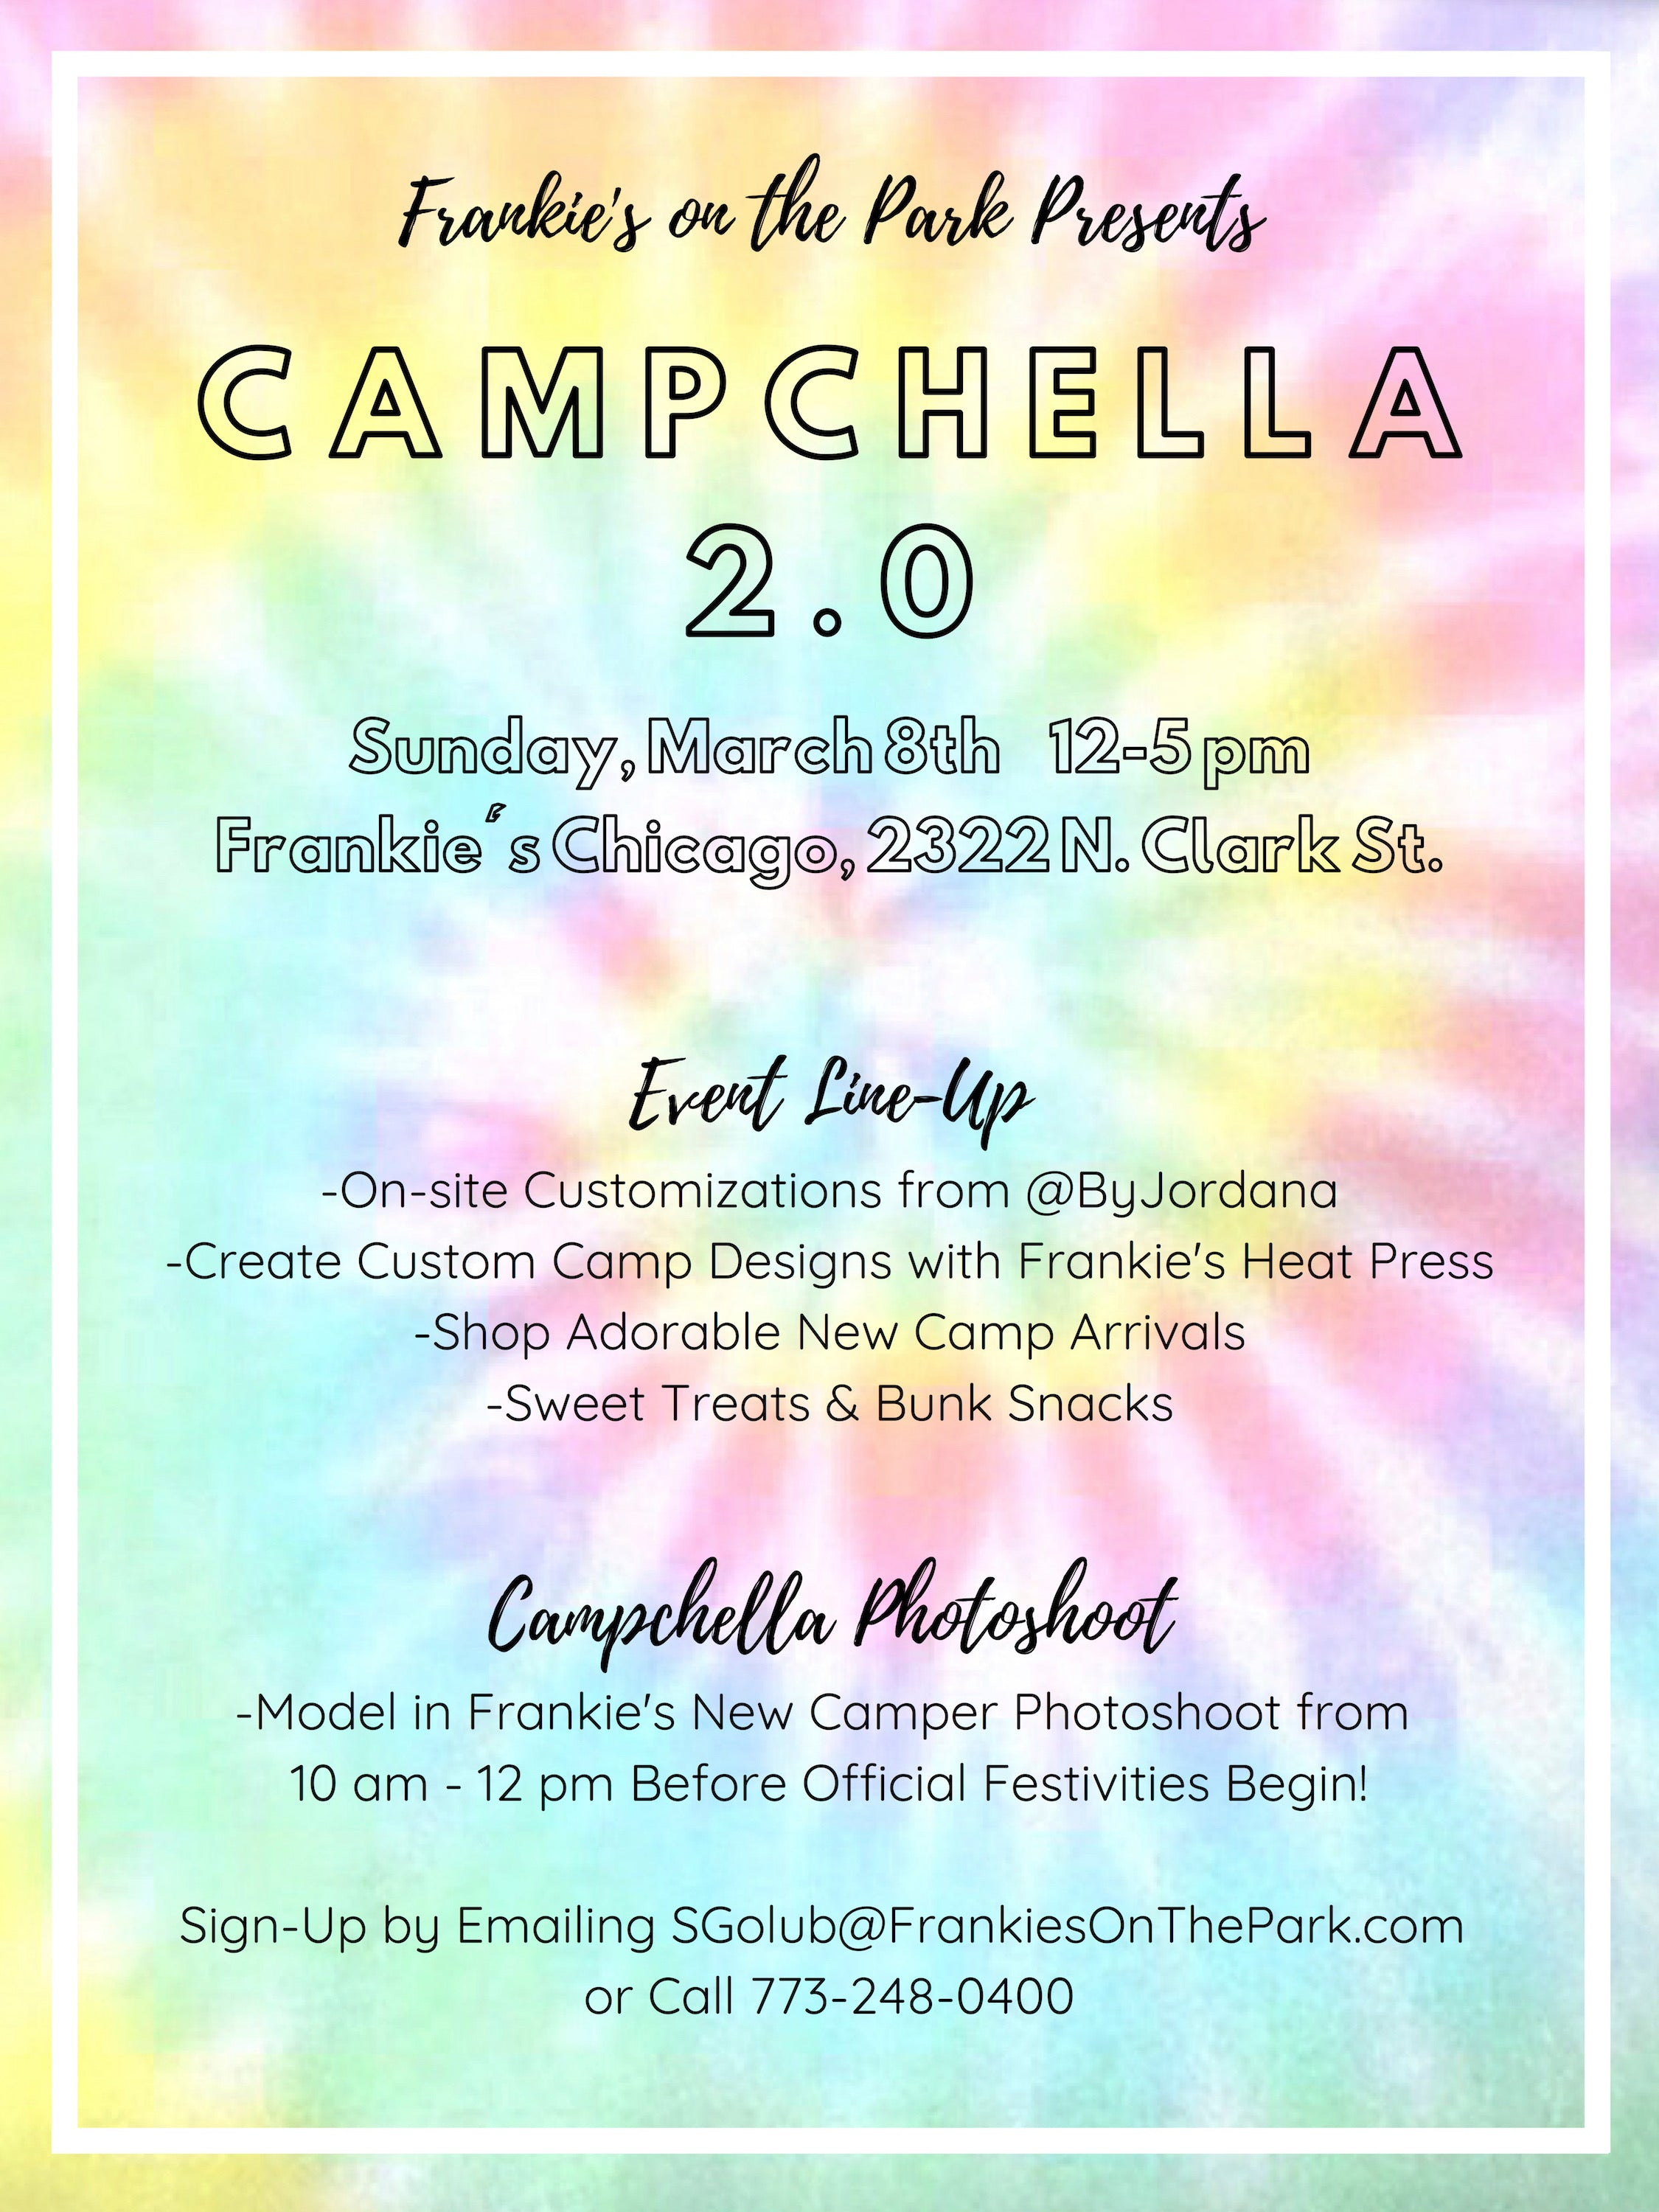 CAMPCHELLA x Frankie's on the Park Chicago